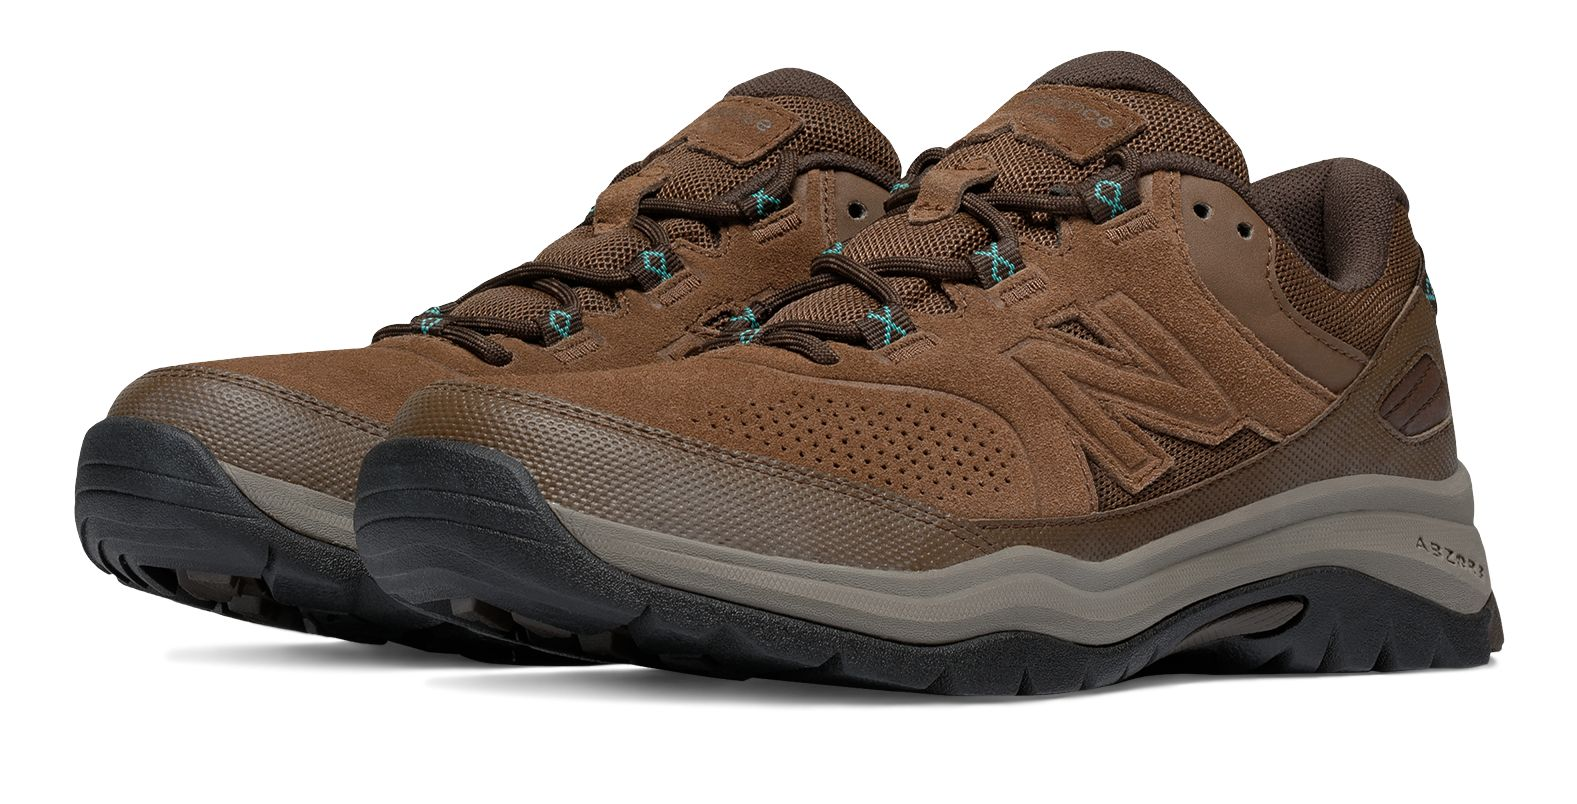 New Balance : New Balance 769 : Women's Hiking & Walking : WW769BR